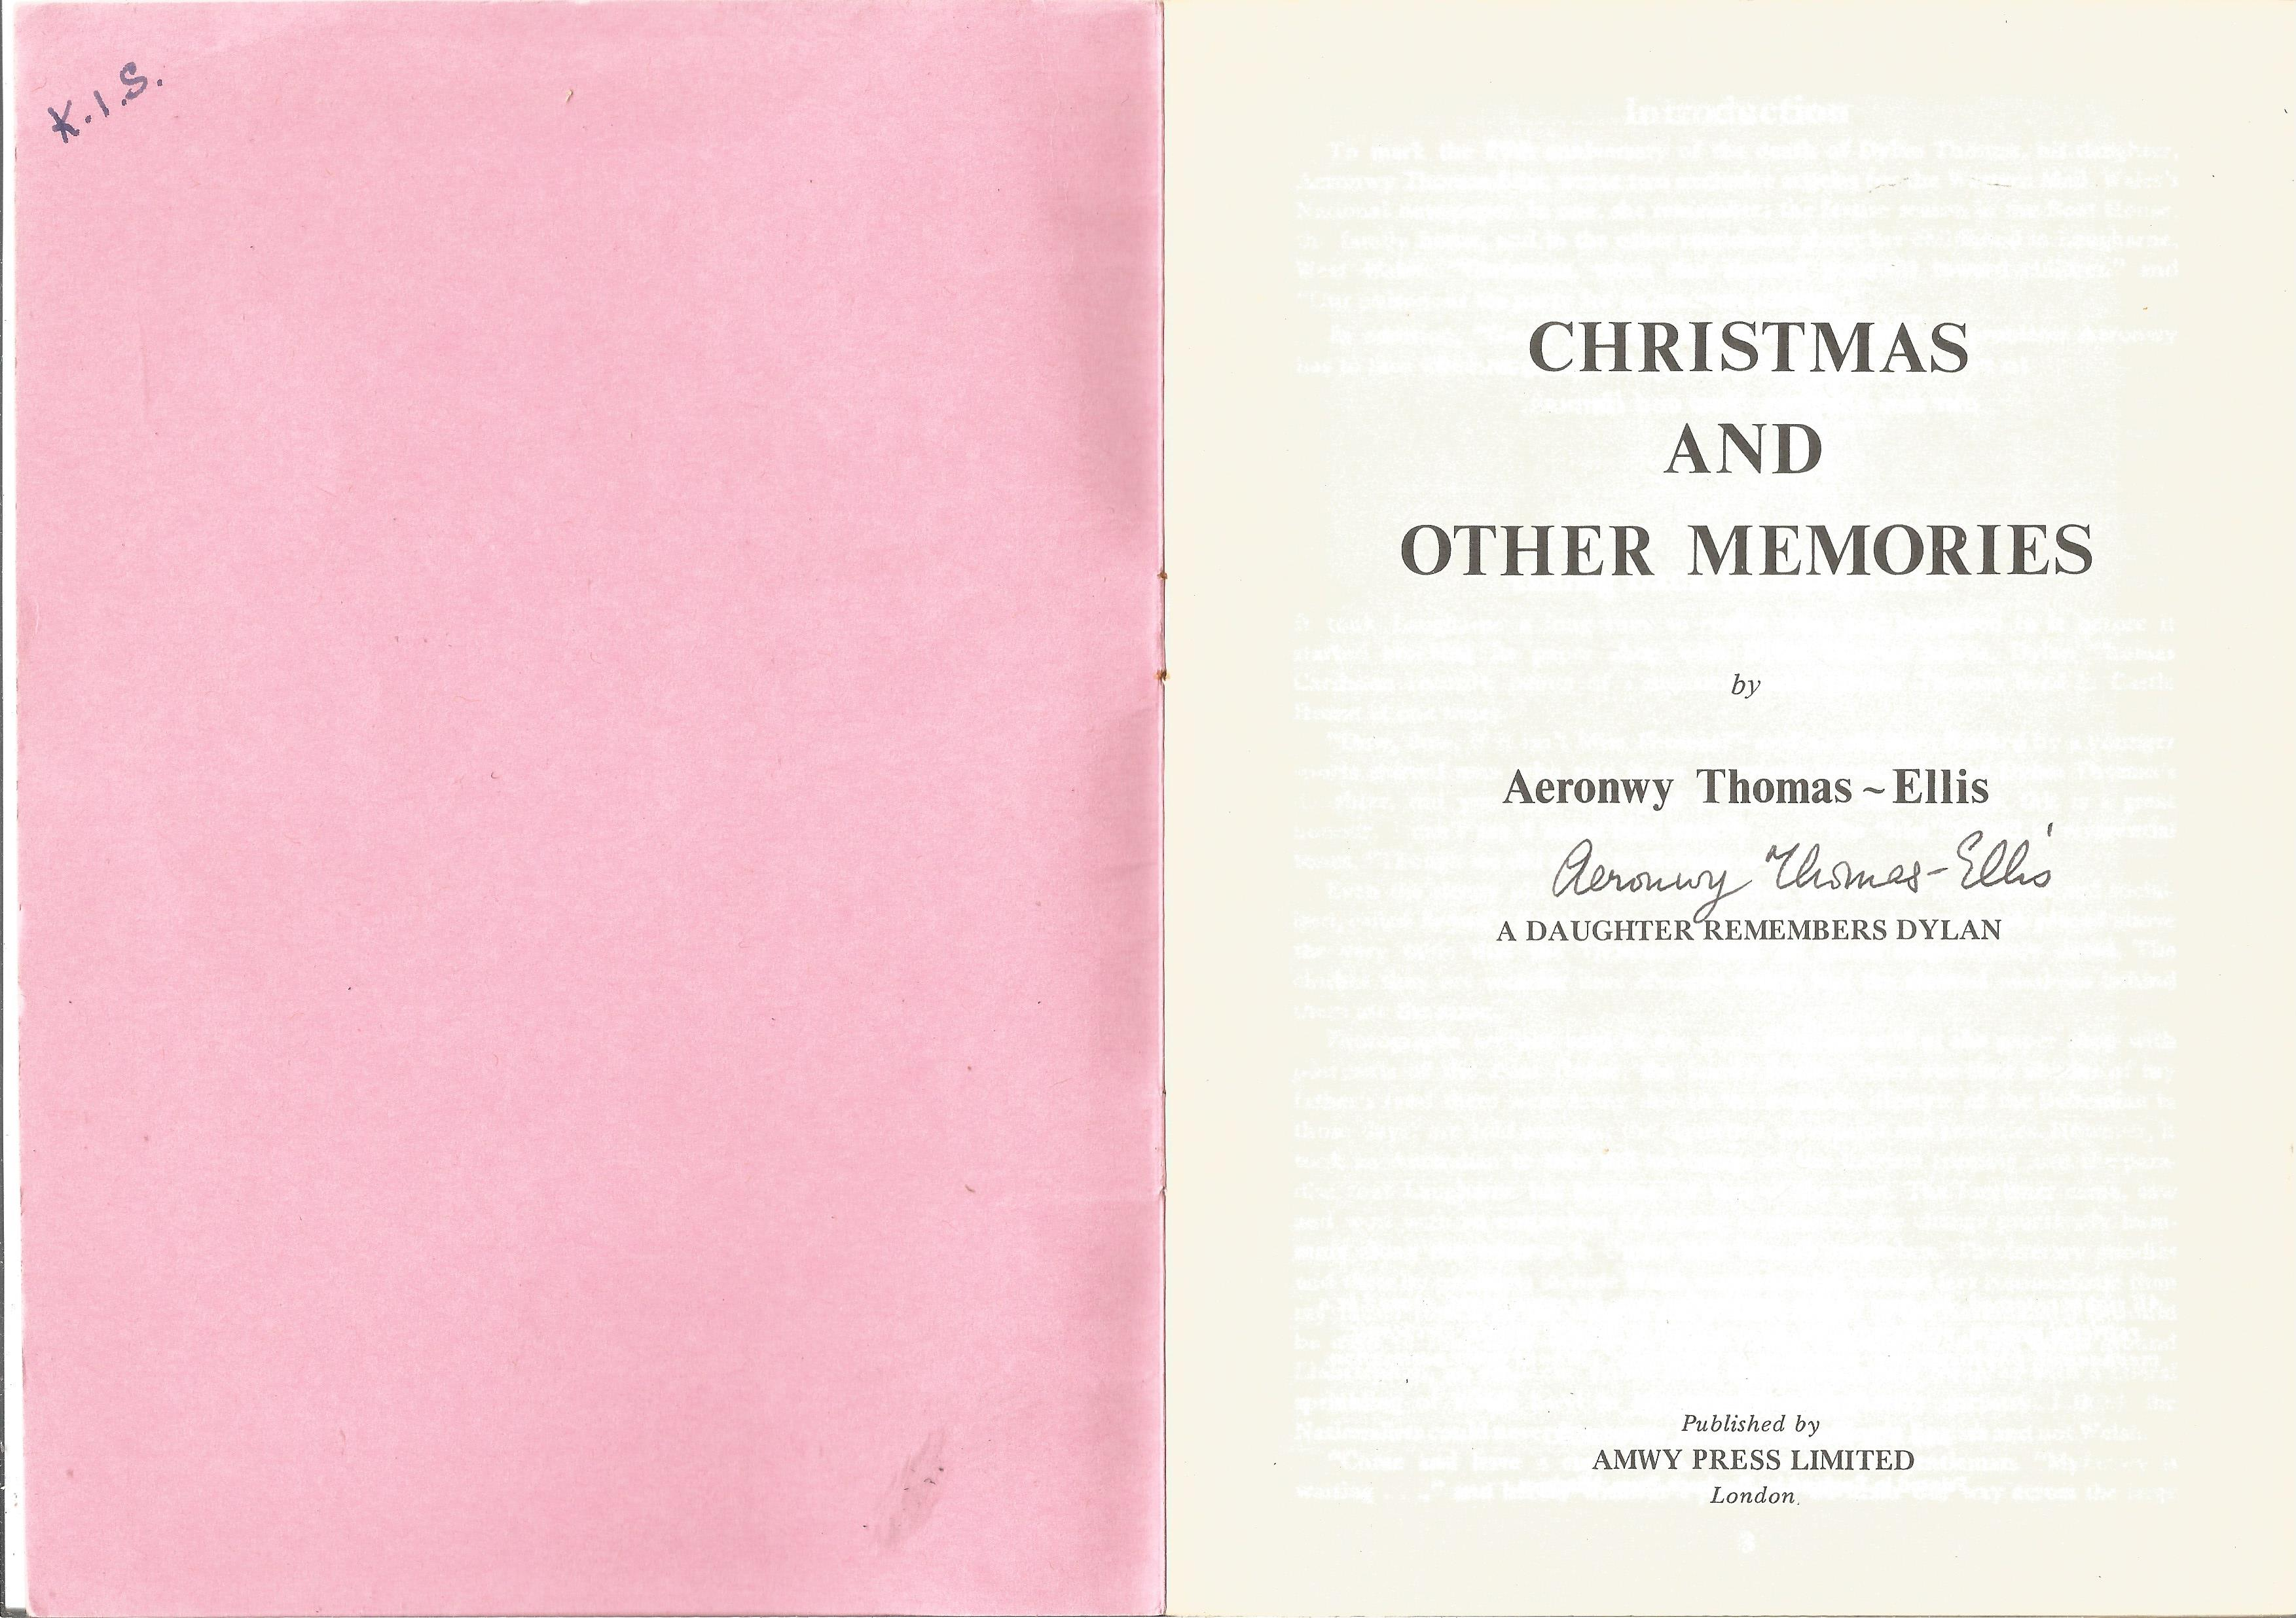 Aeronwy Thomas Ellis Paperback Book Christmas and other Memories signed by the Author on the Title - Image 2 of 2